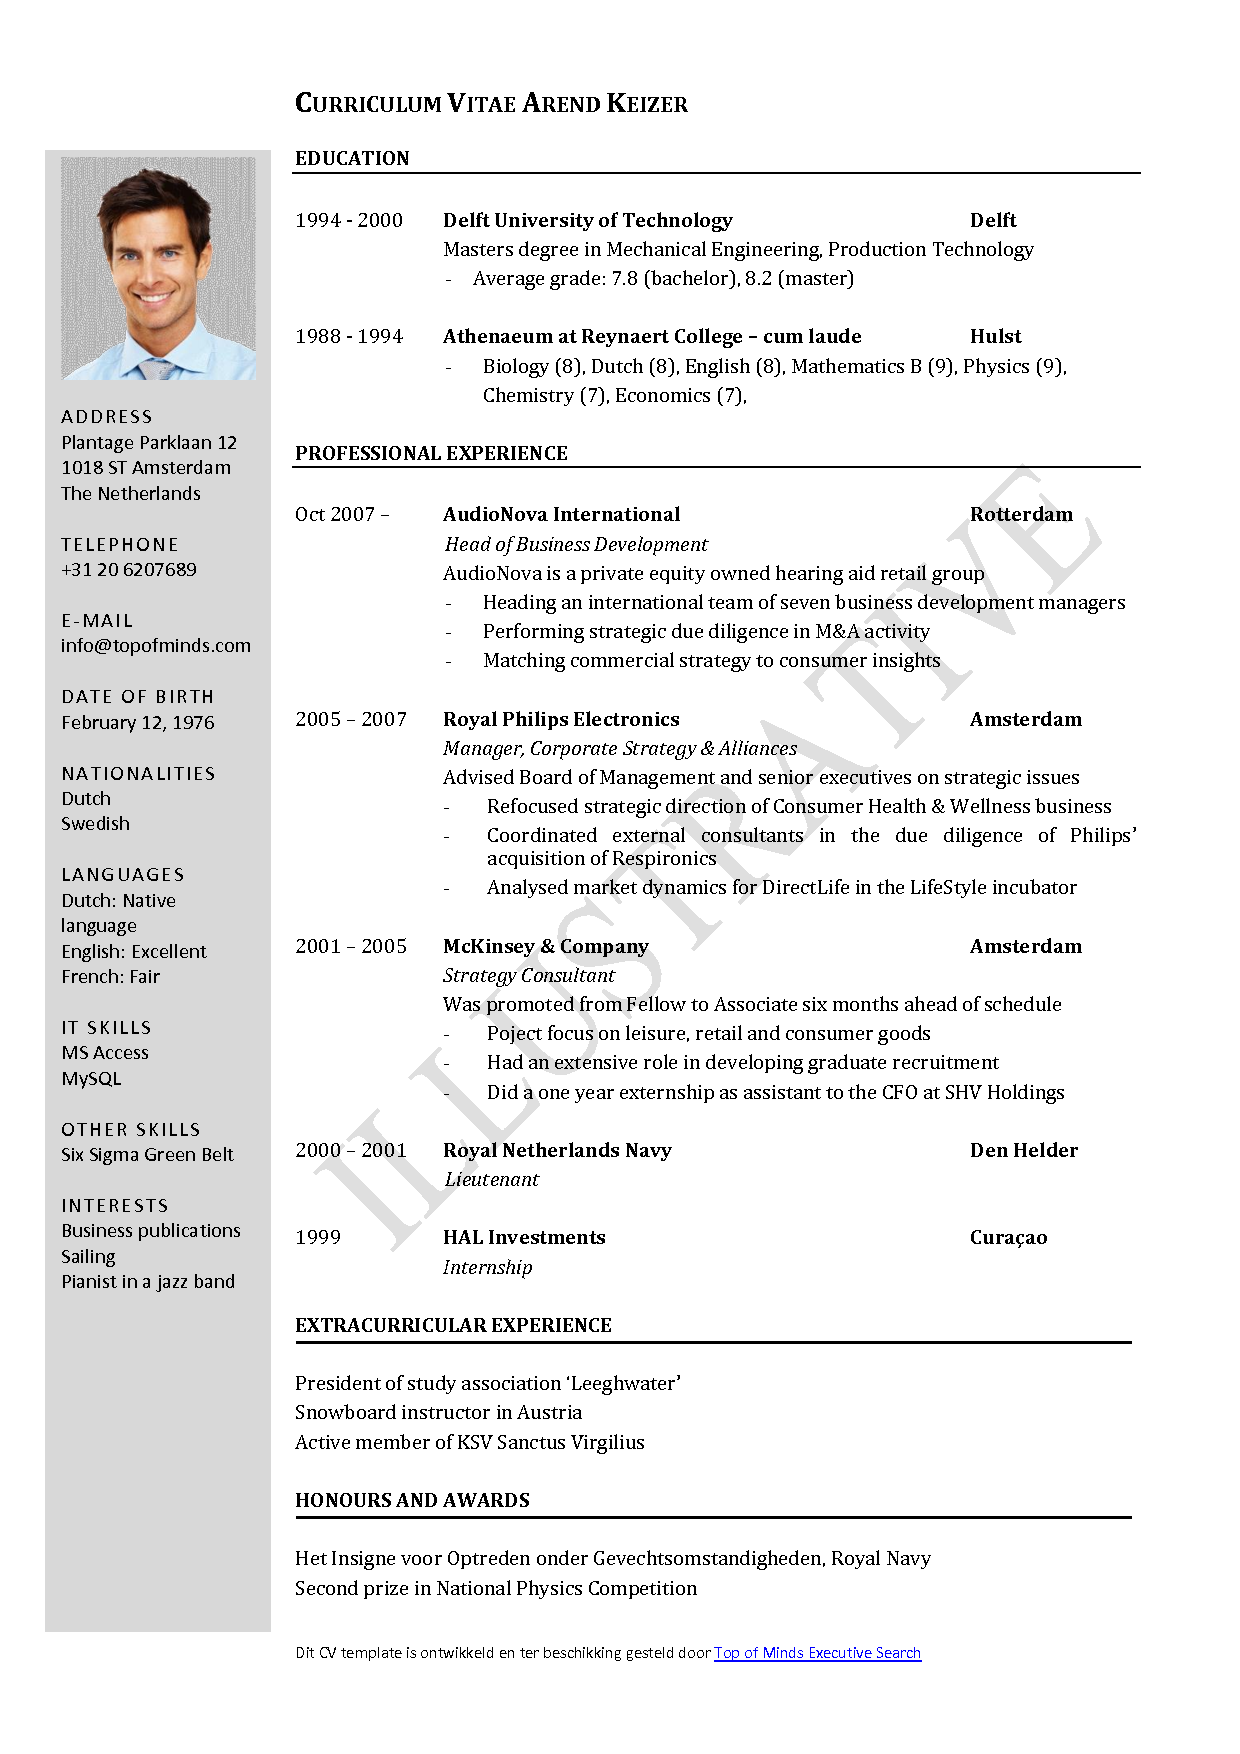 free curriculum vitae template word download cv template - Resume Sample Word Download